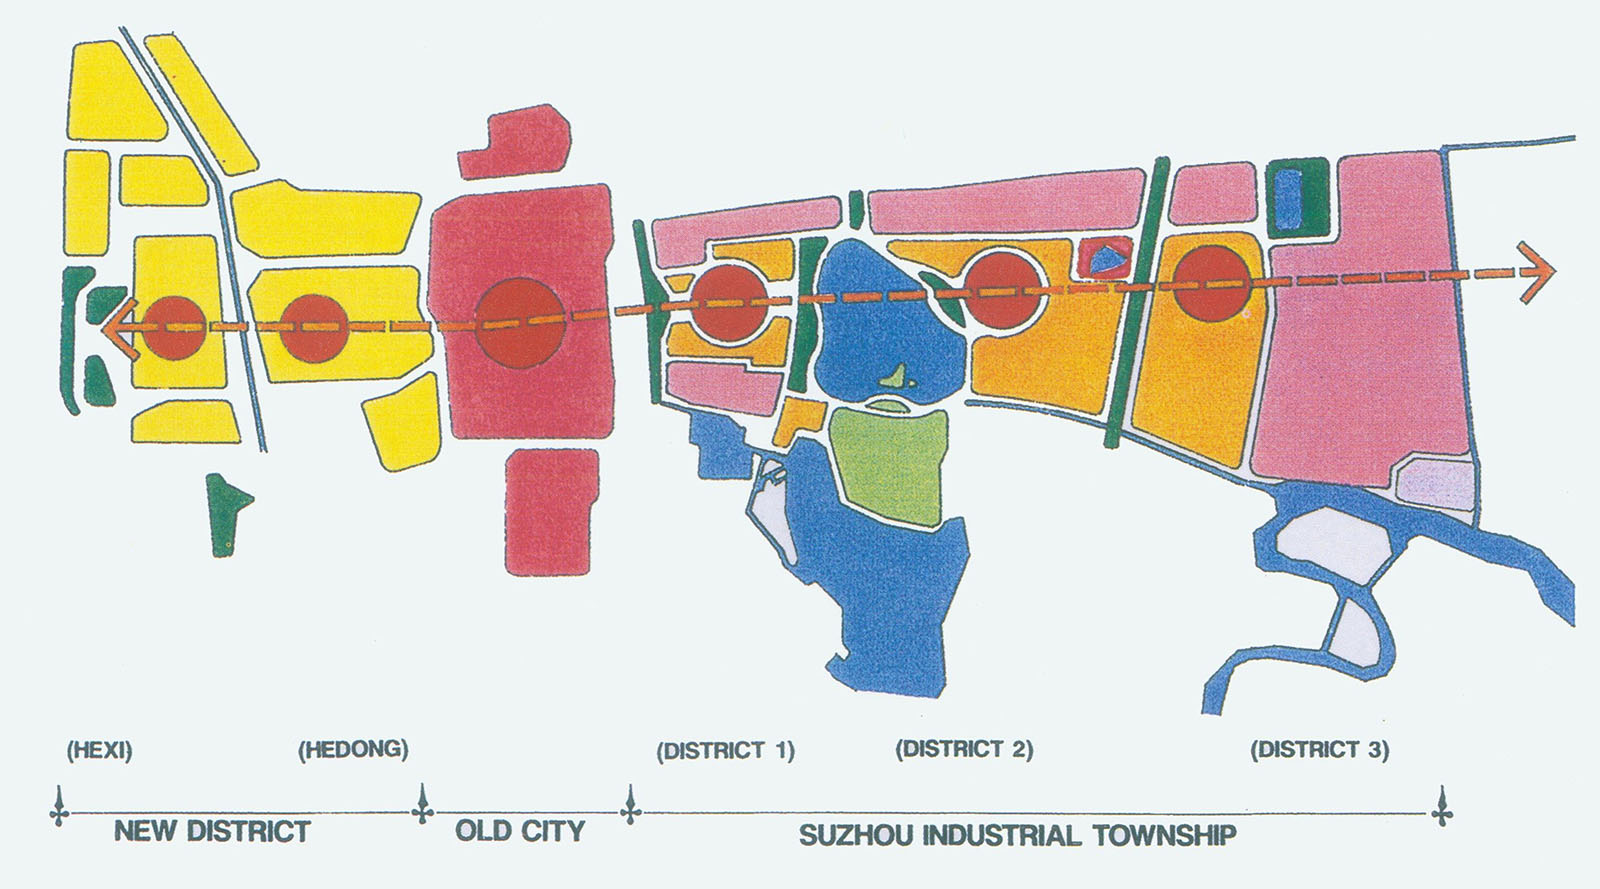 Concept plan map of Suzhou